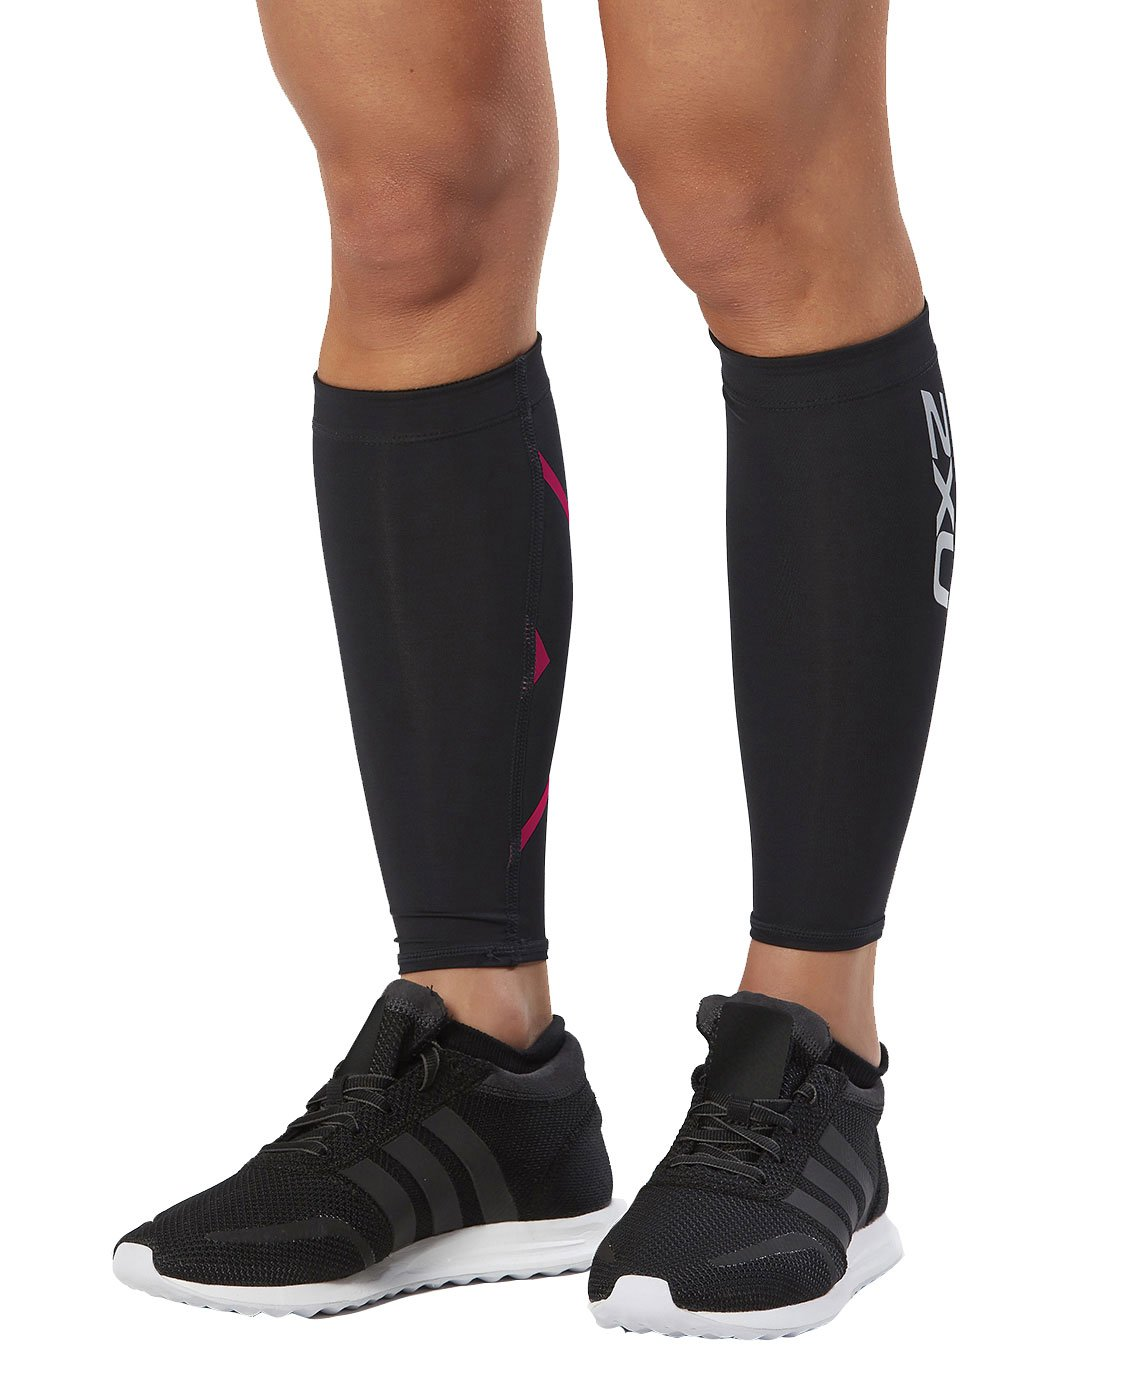 2XU Compression Calf Guard, Black/Pink Glow, X-Large